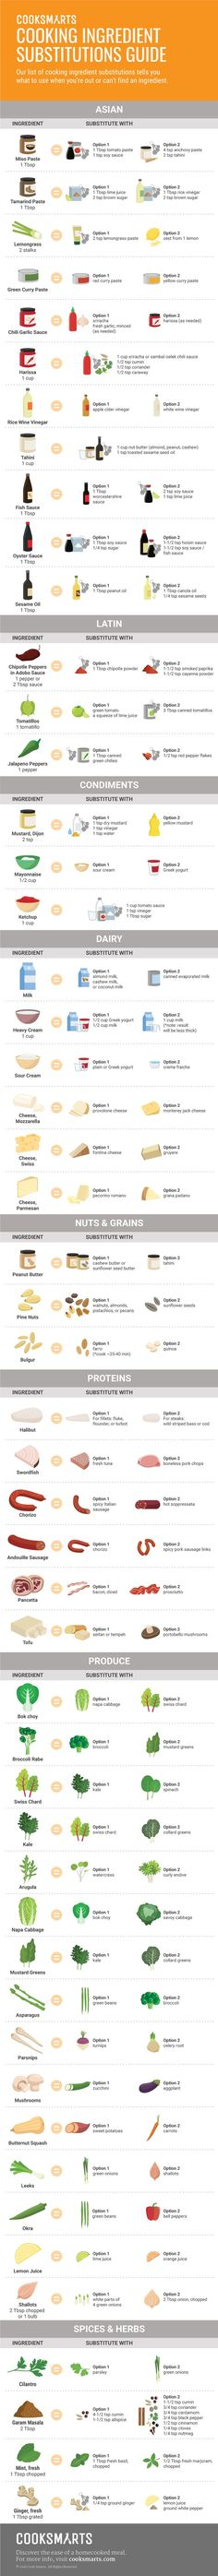 Cook Smarts, Substitution Infographic, Cooking Infographic, Cooking Ingredient Substitutions, Ethnic Ingredient Substitutions, Asian Ingredient Substitutions, Cooking Substitutions Chart, Latin Ingredient Substitutions, Dairy Substitutions, Nut Substitutions, Protein Substitutions, Sauce Substitutions, Produce Substitutions, Spice Substitutions